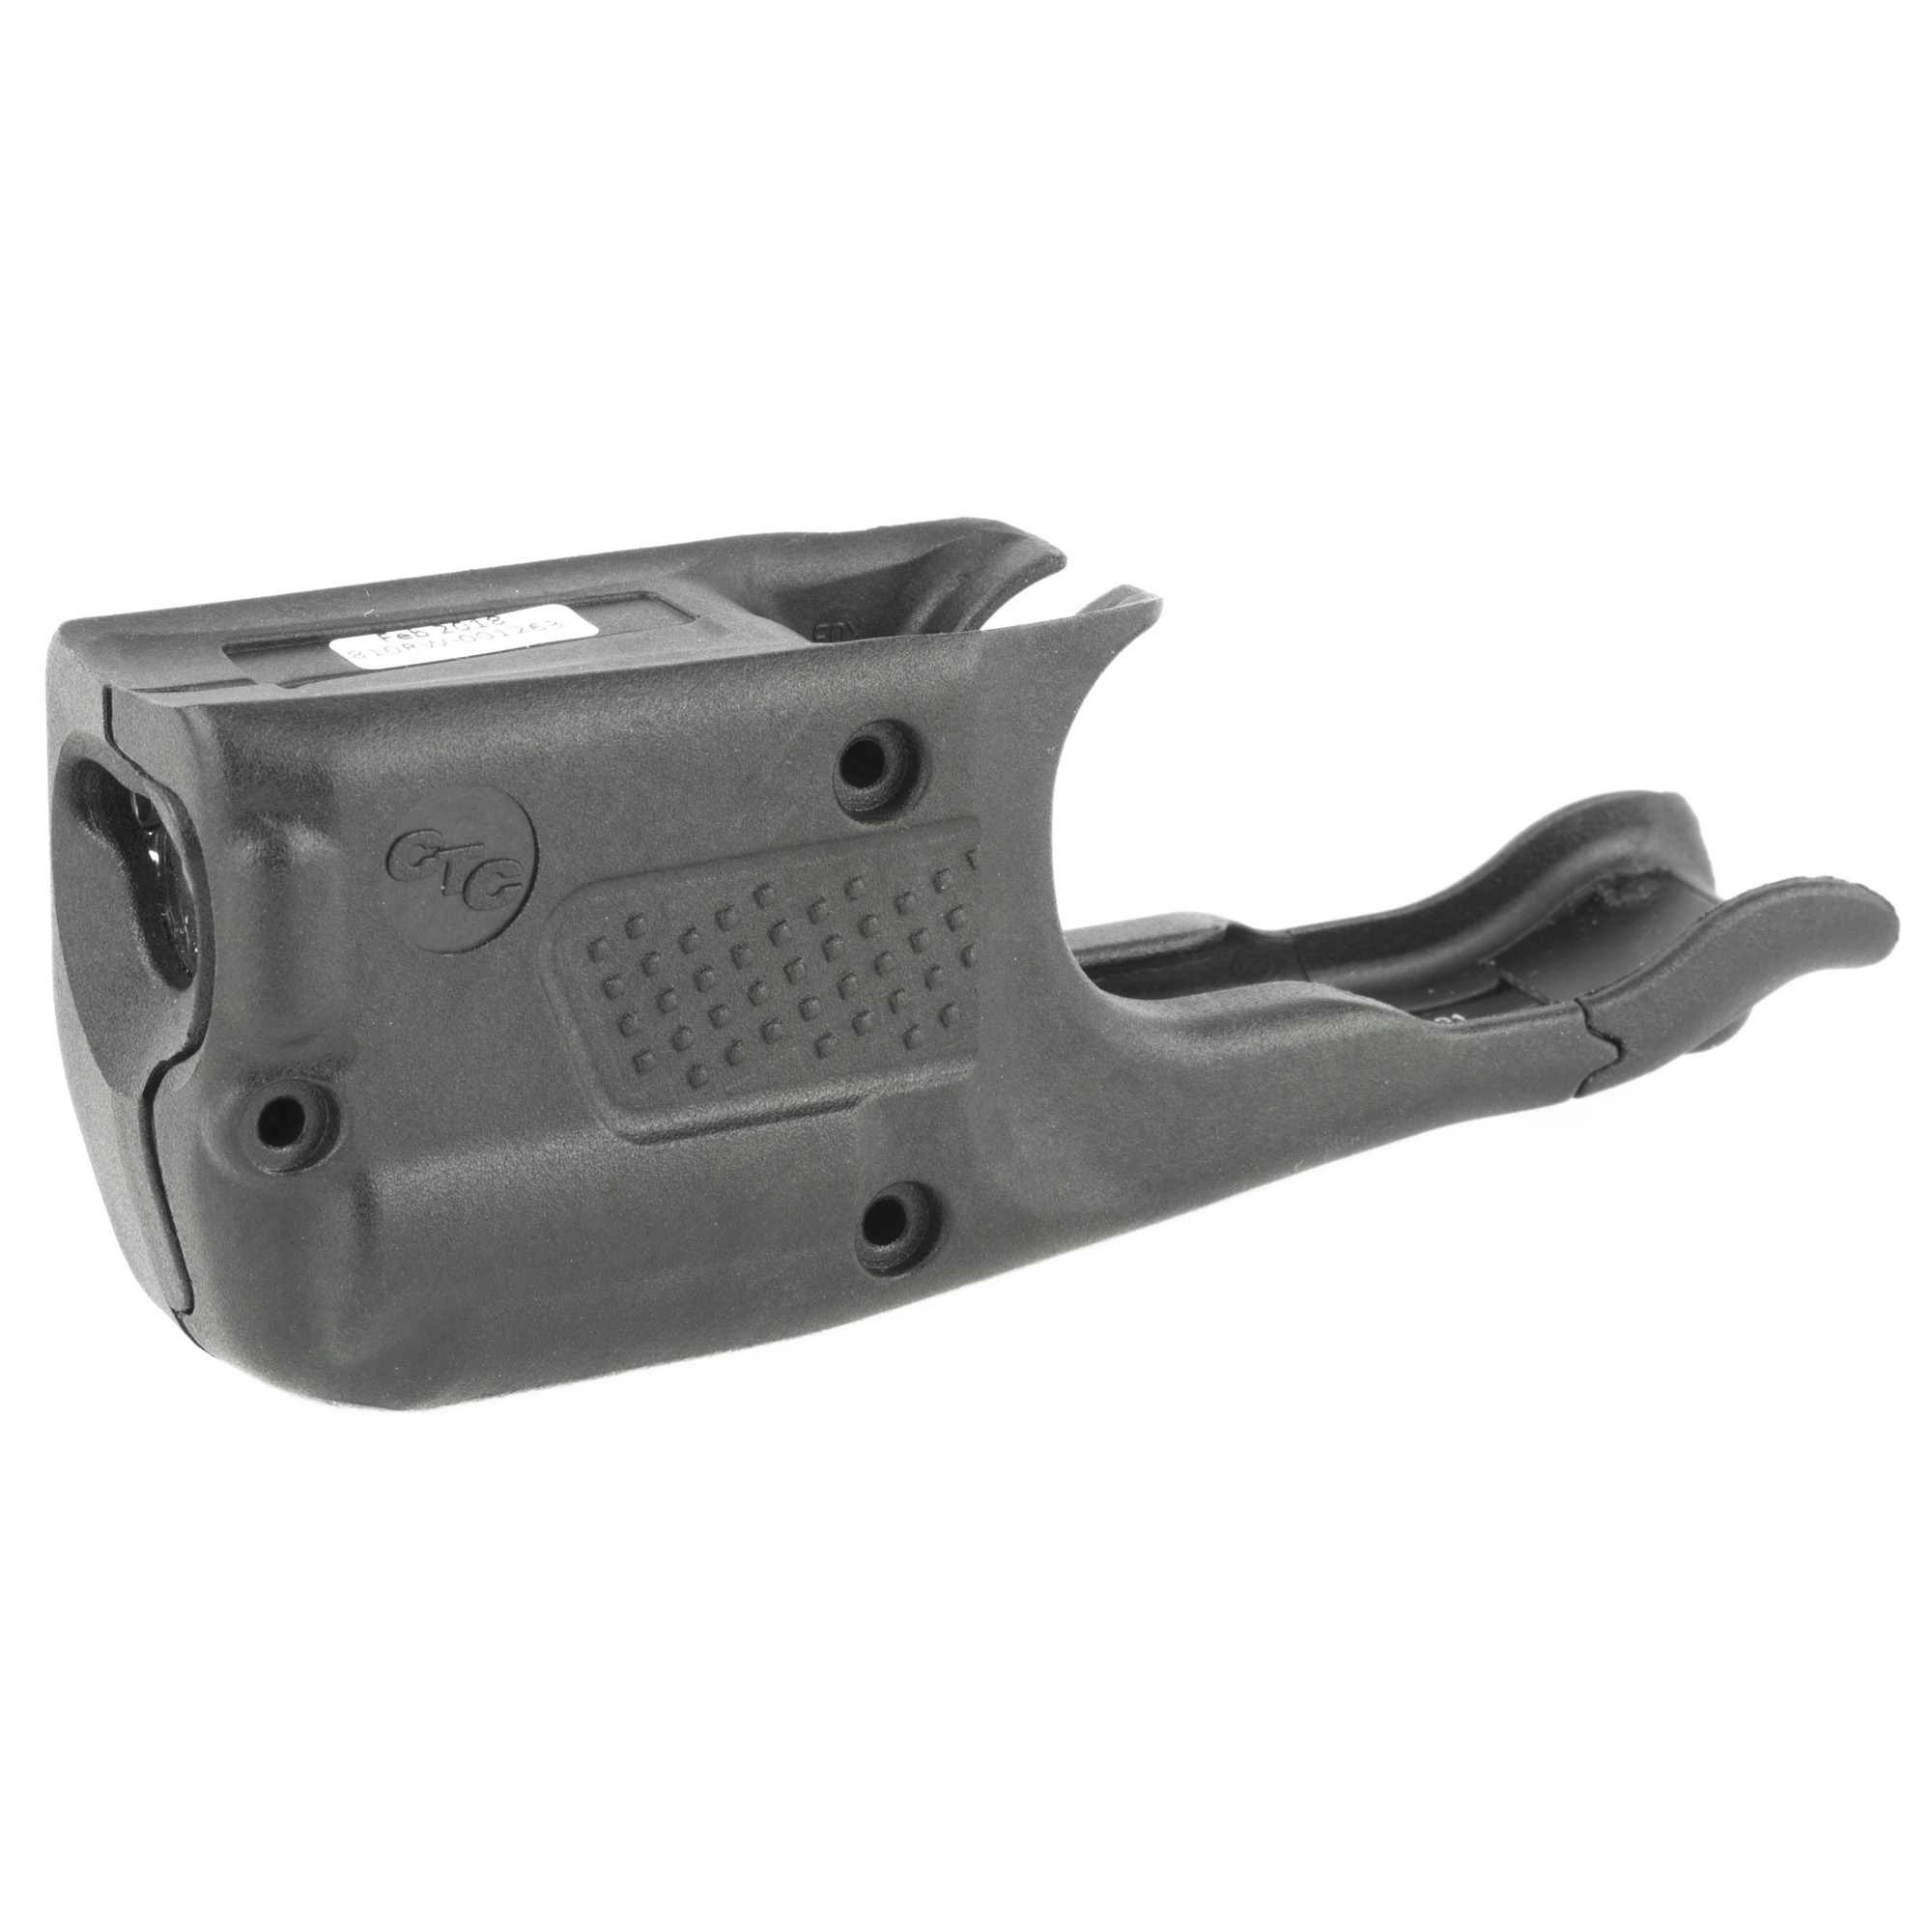 """LL-810 Laserguard(R) Pro(TM) for GLOCK Subcompact pistols is a powerful red laser sight and 150 Lumen LED white light in a single compact unit. This illumination and targeting product is activated with Crimson Trace's famed Instinctive Activation(TM)"""" which activates the unit via a front activation button when the pistol is held in a normal firing grip. The LL-810 features four modes of operation (see below)"""" a Master On/Off Switch"""" is completely user-installed in moments with no modifications to the gun frame and the laser is user-adjustable for windage and elevation. Offers 2 hours of battery with a single CR2 Lithium battery. This model will fit the following GLOCK pistols: 3rd Generation 26"""" 27"""" 33"""" 36"""" Gen4 26"""" 27"""" 33"""" and Gen5 26."""